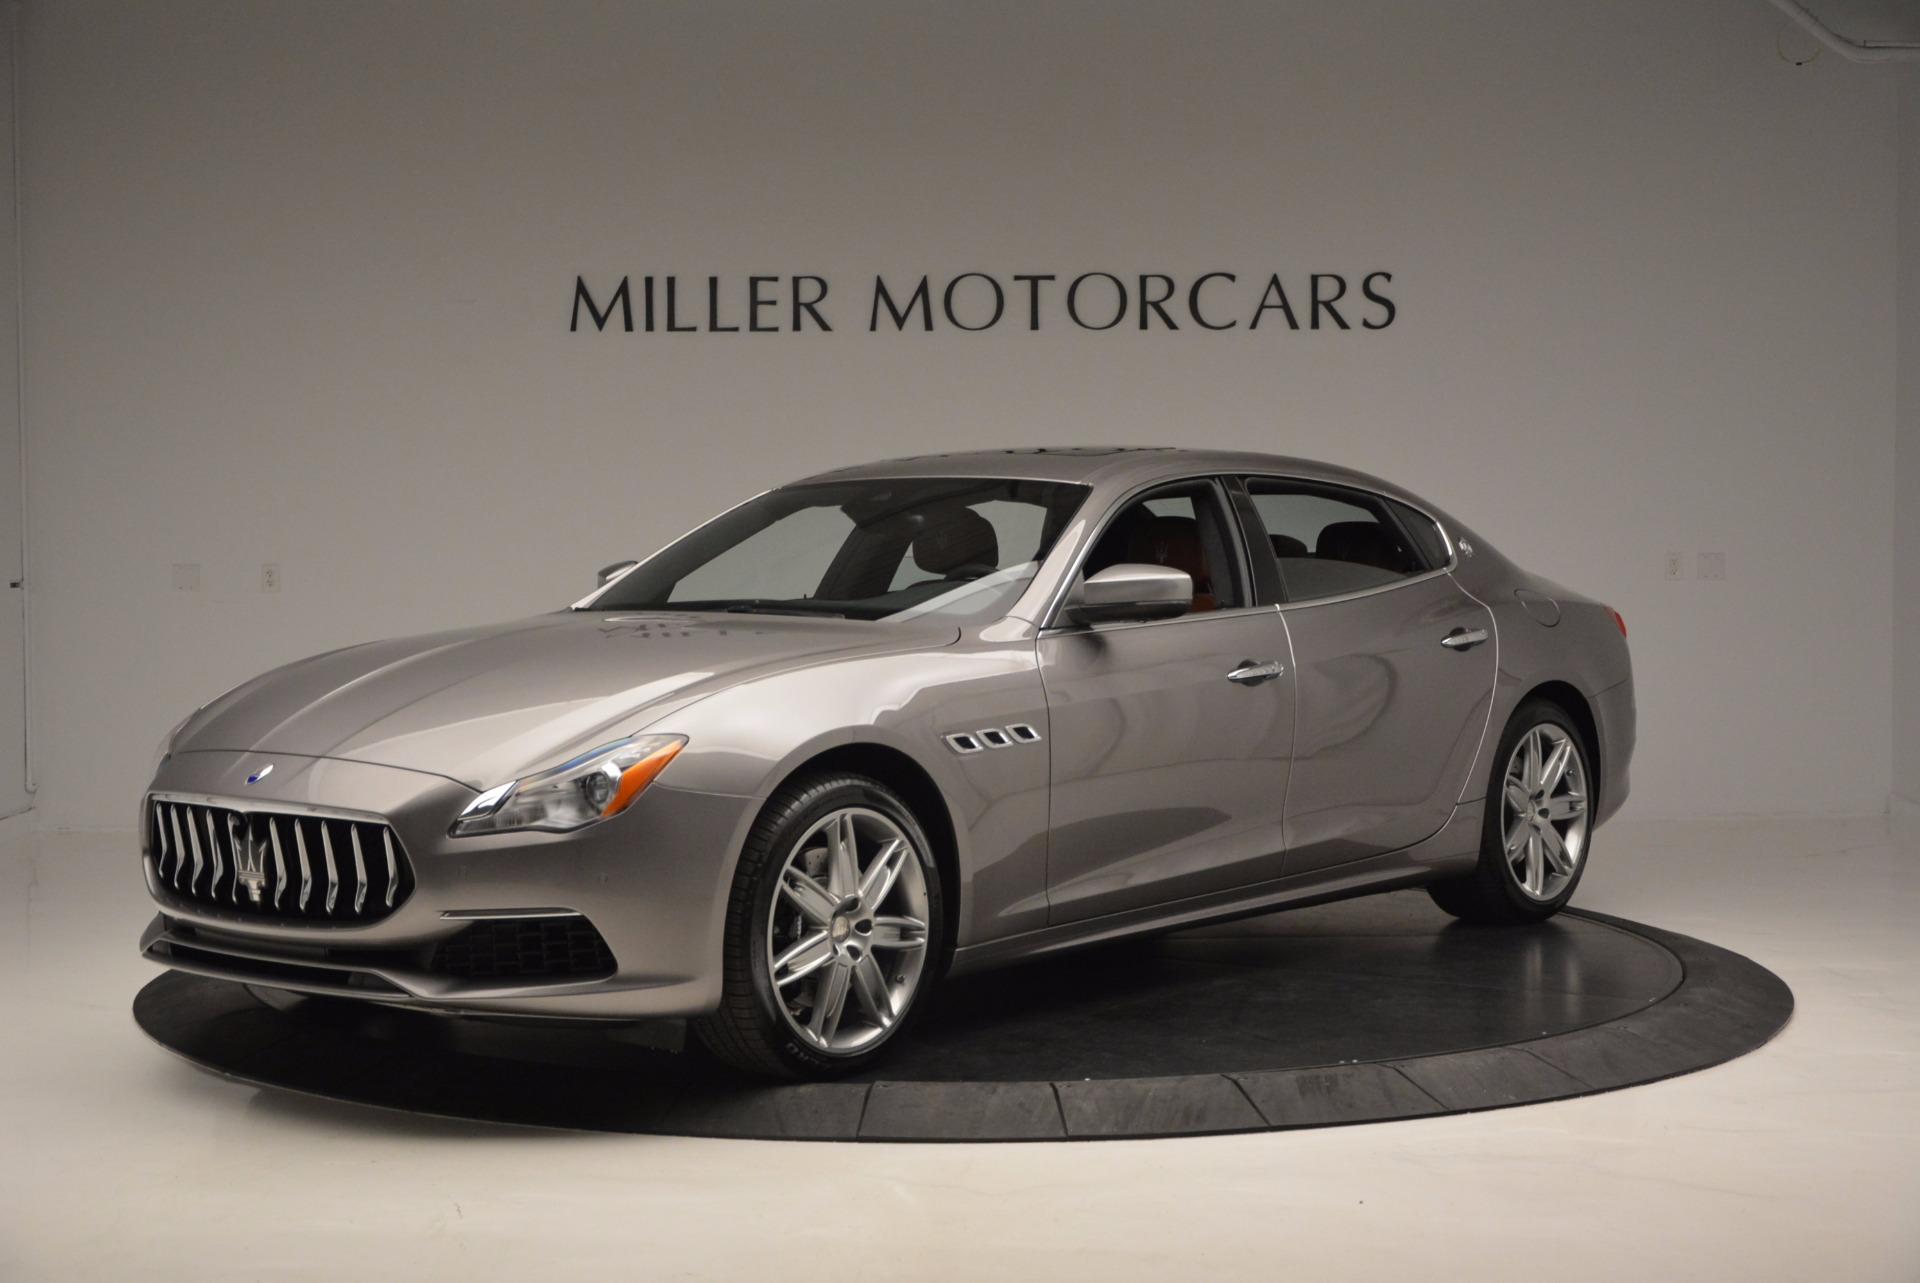 New 2017 Maserati Quattroporte S Q4 GranLusso For Sale In Greenwich, CT 1265_p2